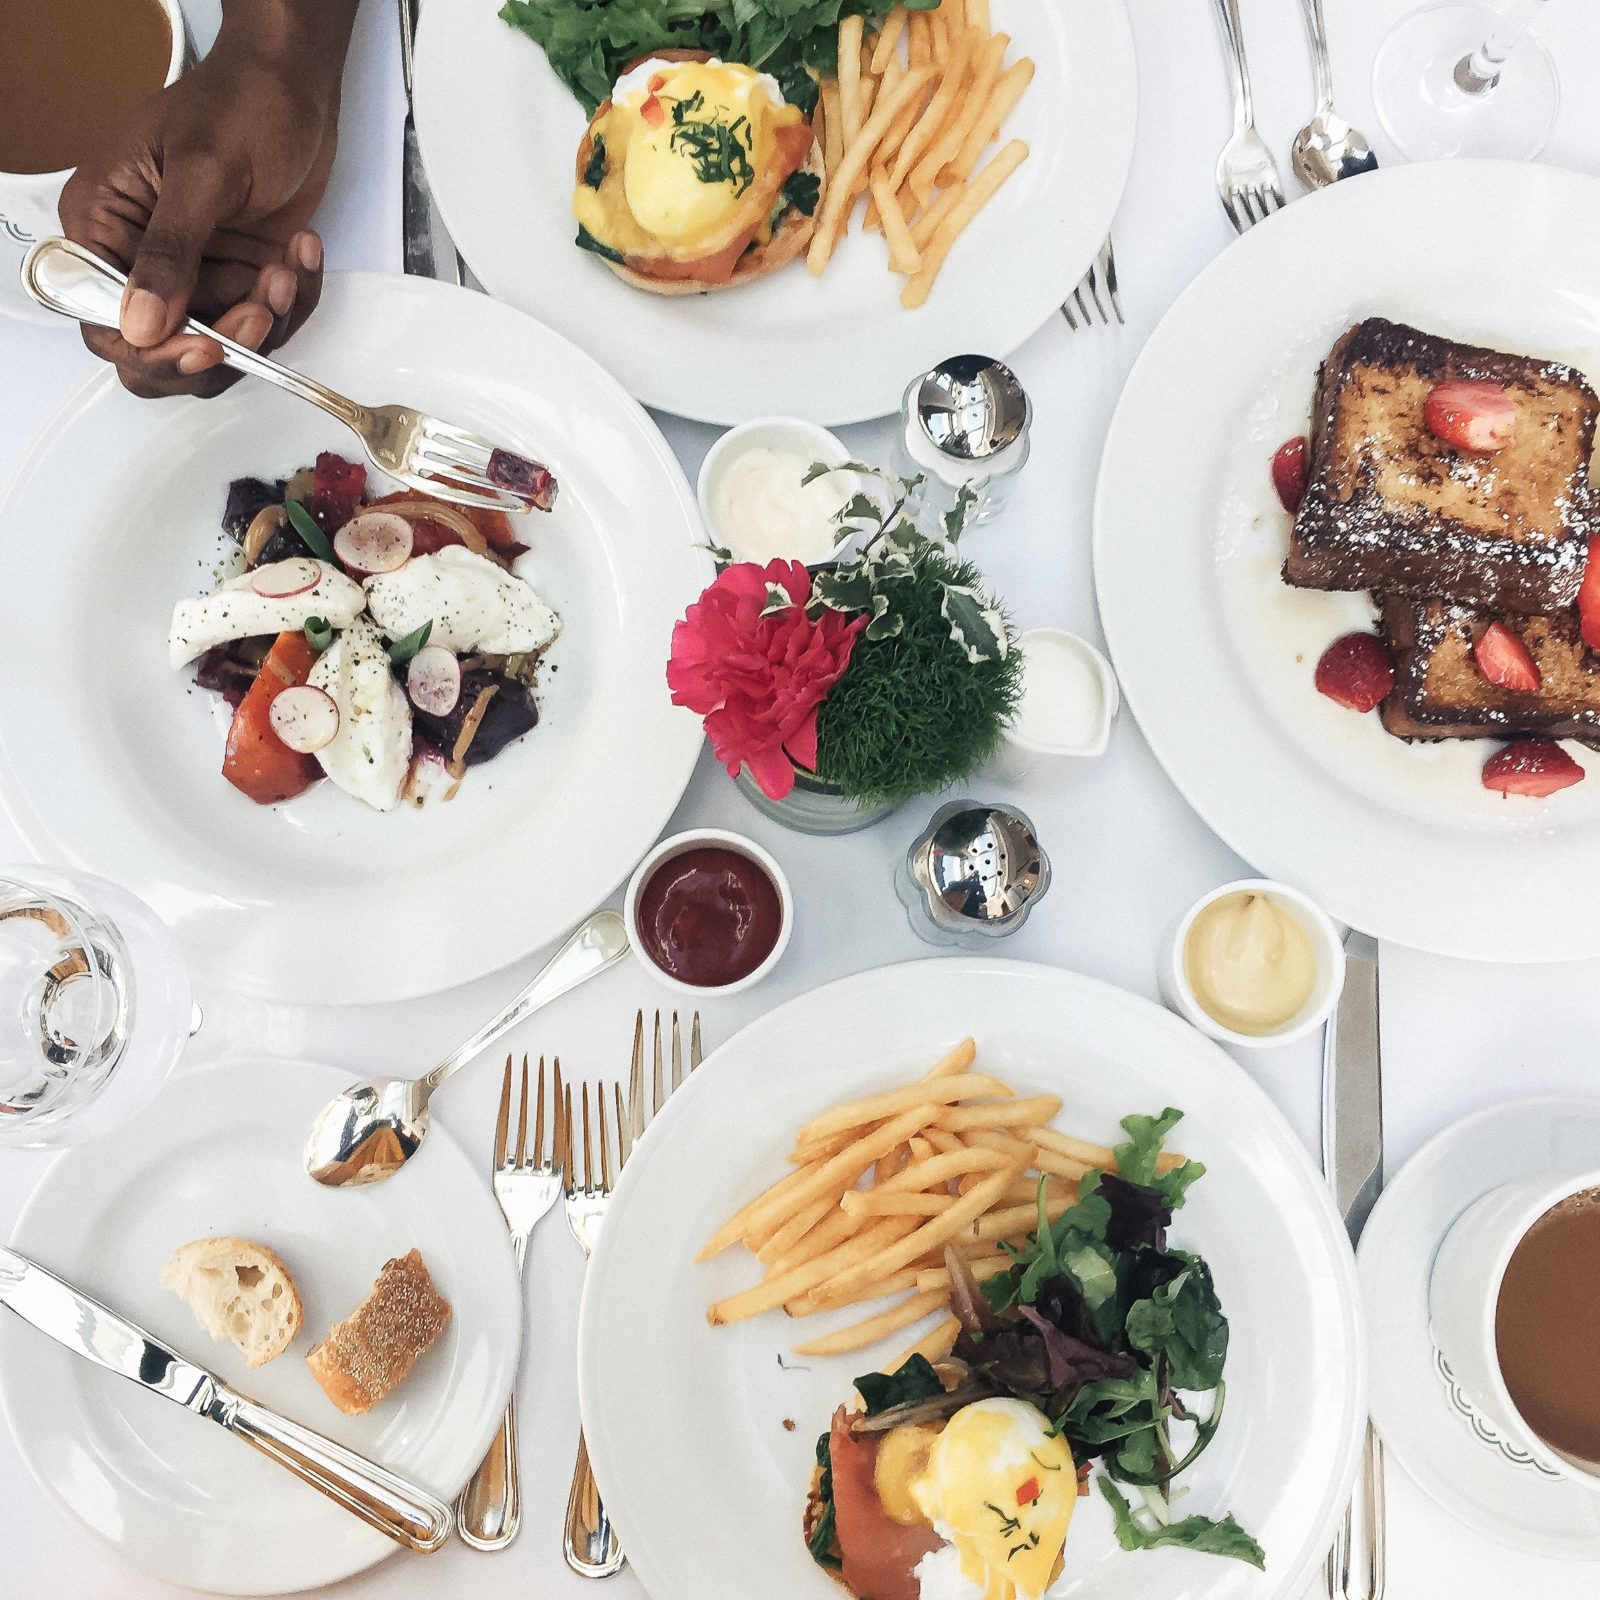 Top 5 Instagram Worthy Breakfast Brunch Restaurants In Atlanta Millennielle Brunch Restaurants Brunch Atlanta Brunch